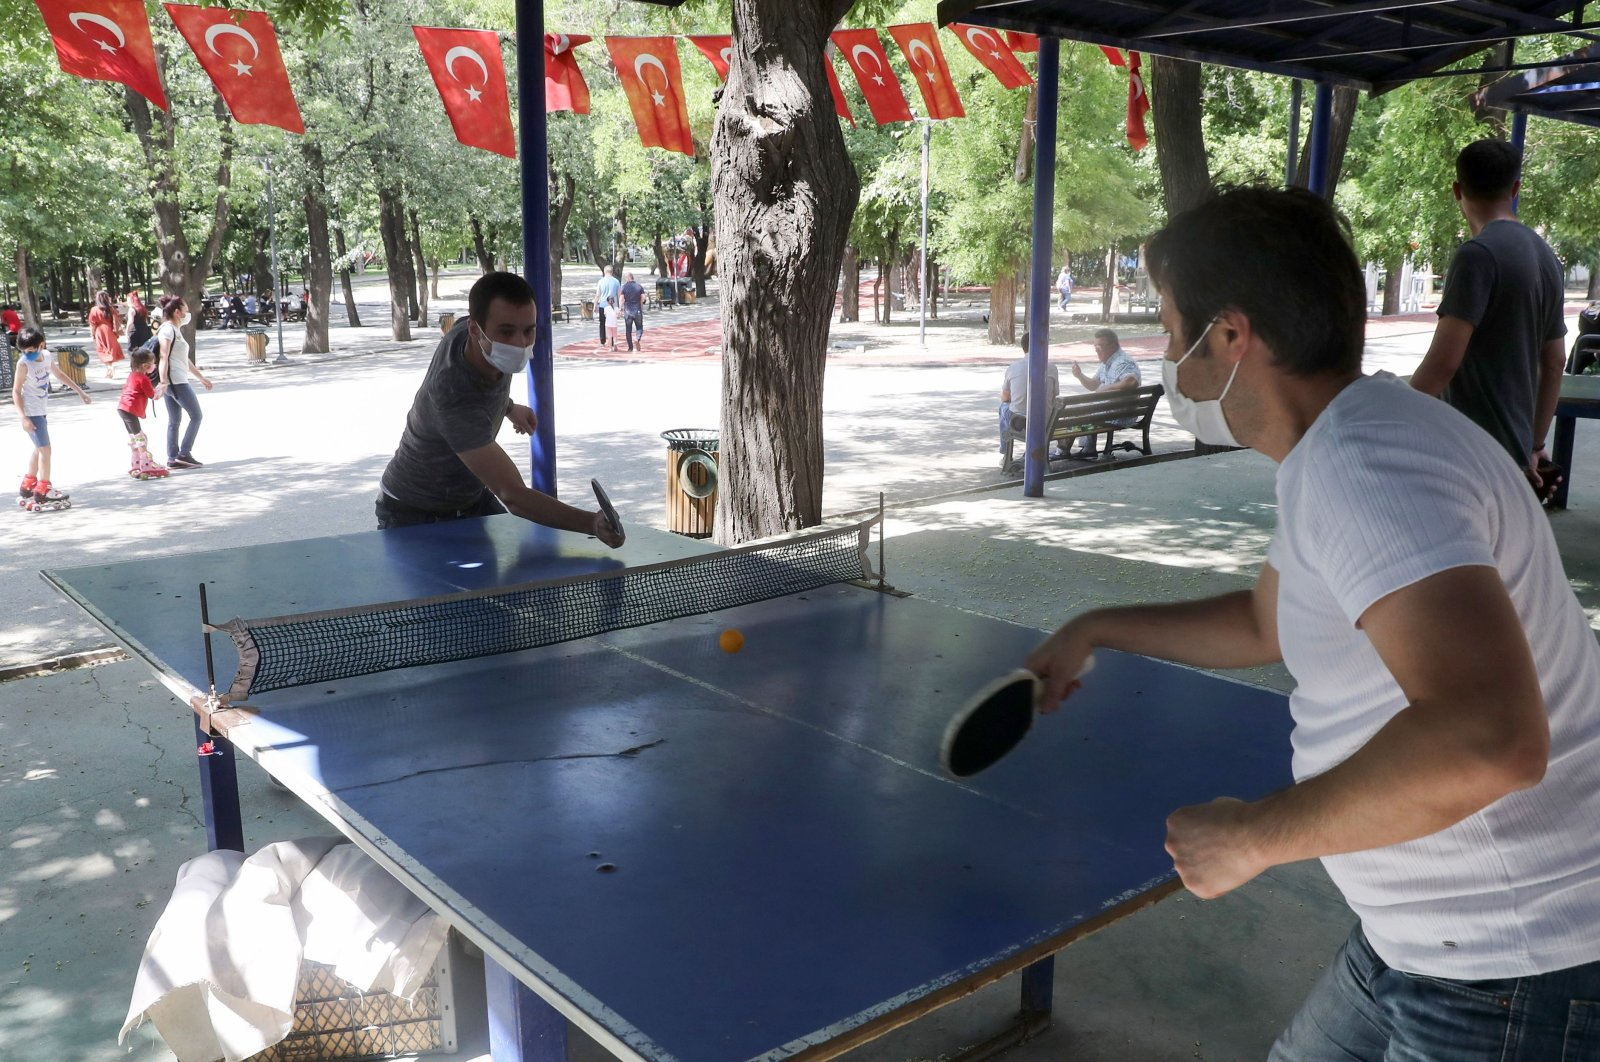 Two men wearing protective masks play table tennis at Kurtuluş Park, in the capital Ankara, Turkey, July 26, 2020. (AFP Photo)